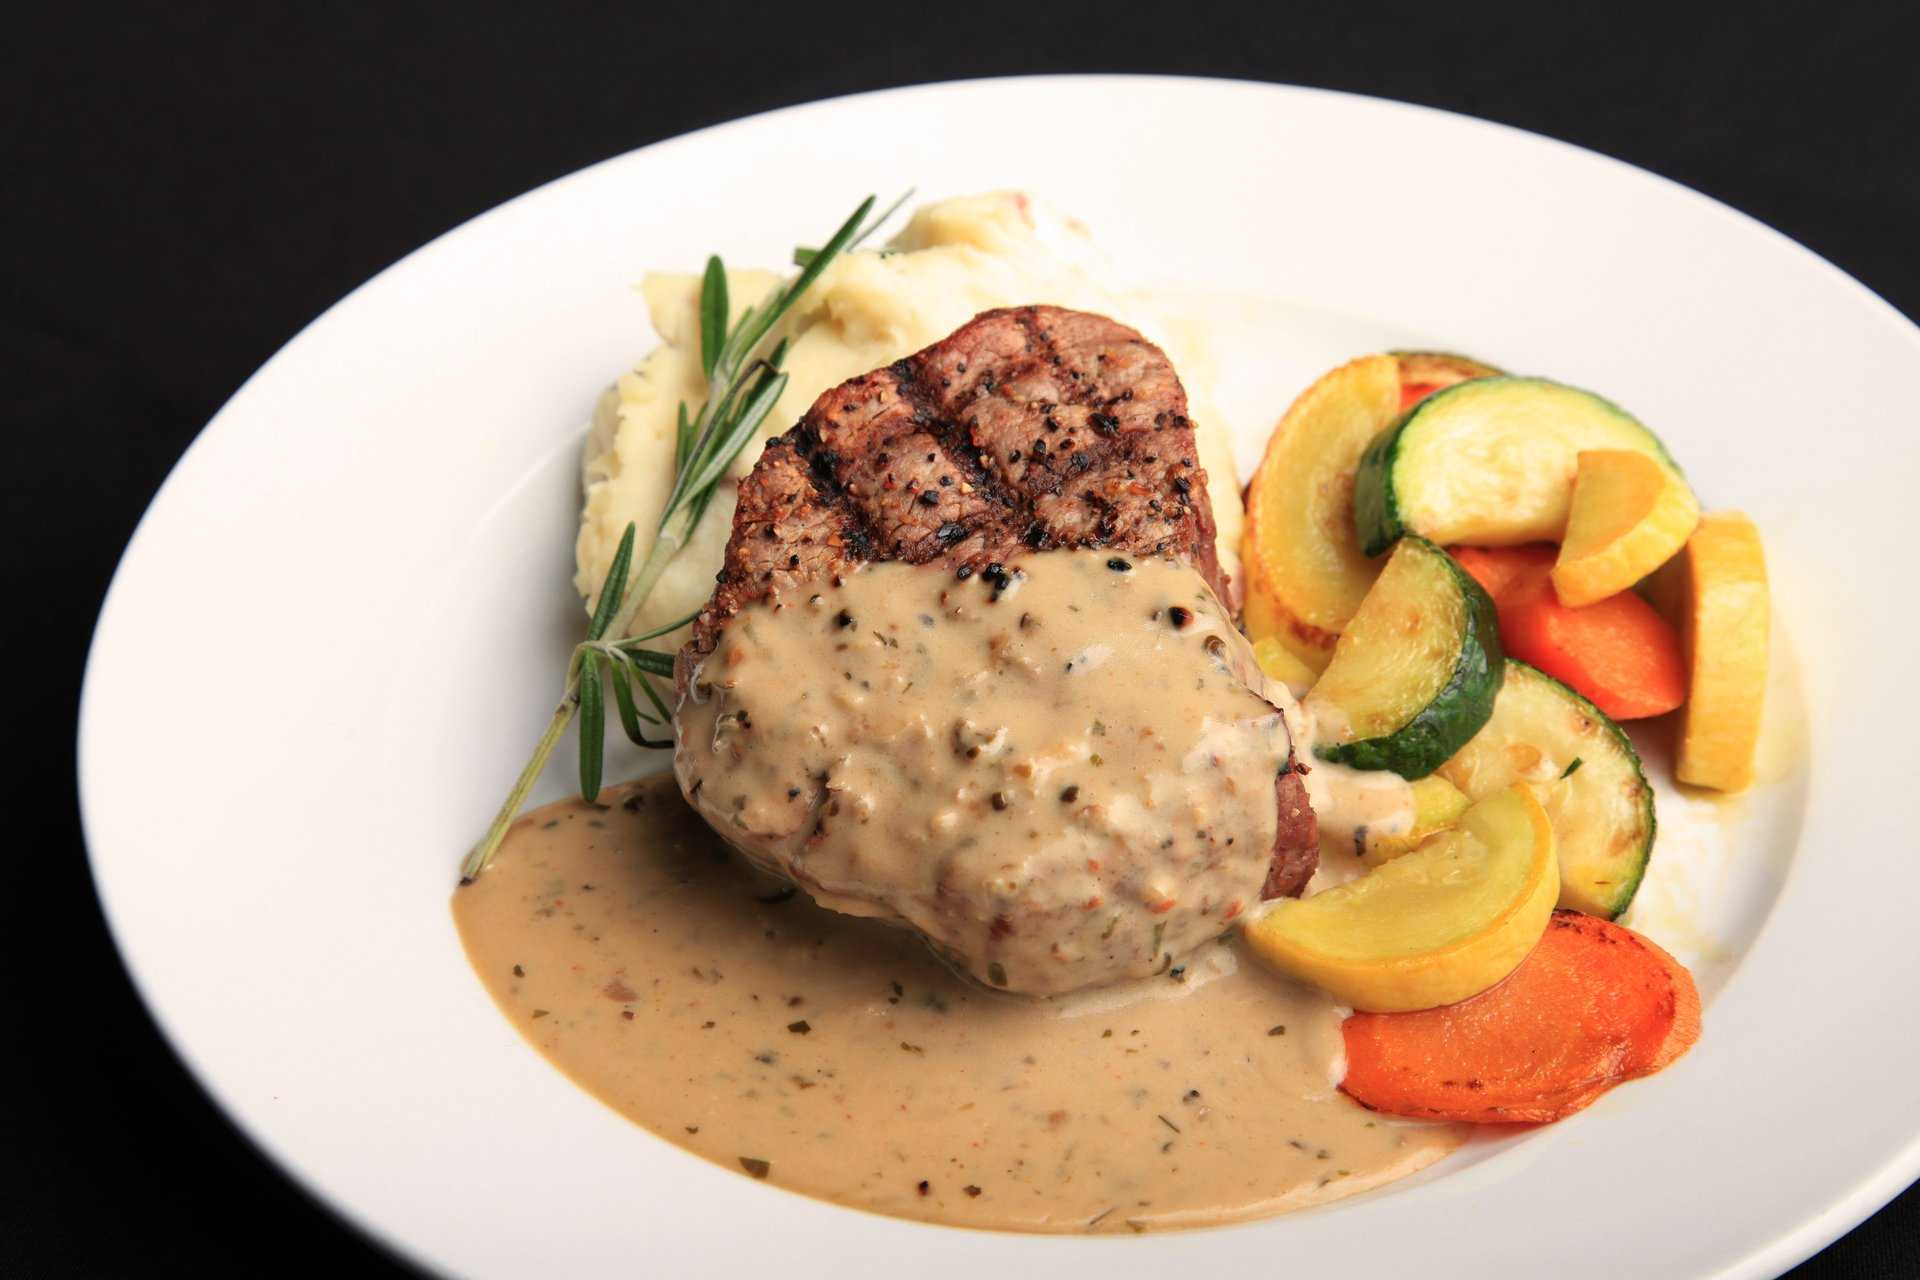 Ti Amo filet topped with your choice of Romano or brandy peppercorn cream sauce.